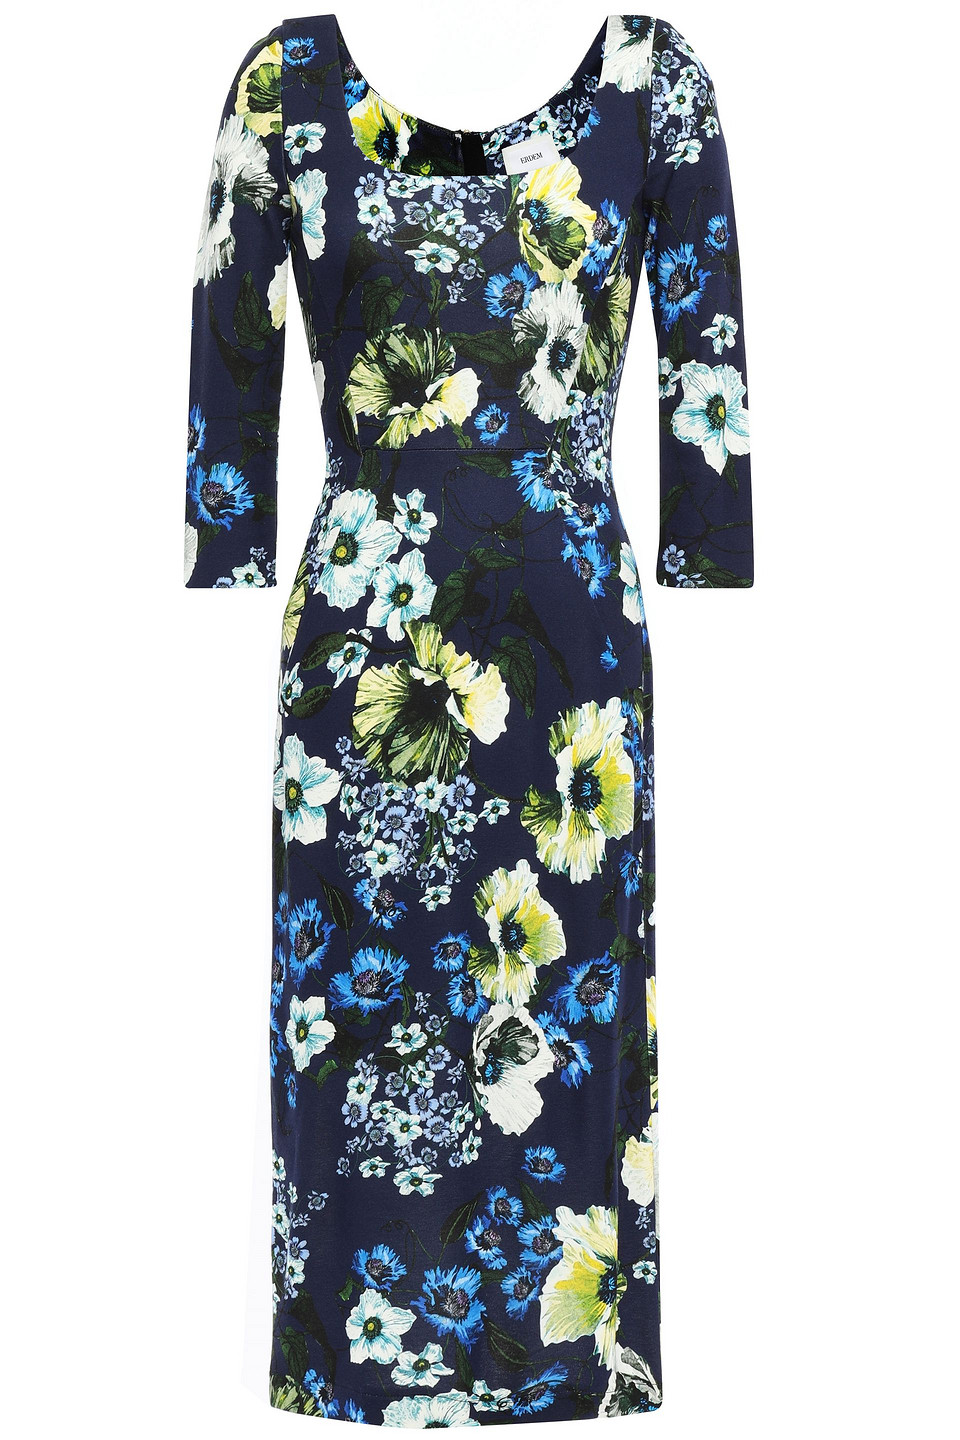 Erdem | Erdem Woman Floral-print Ponte Dress Navy | Clouty